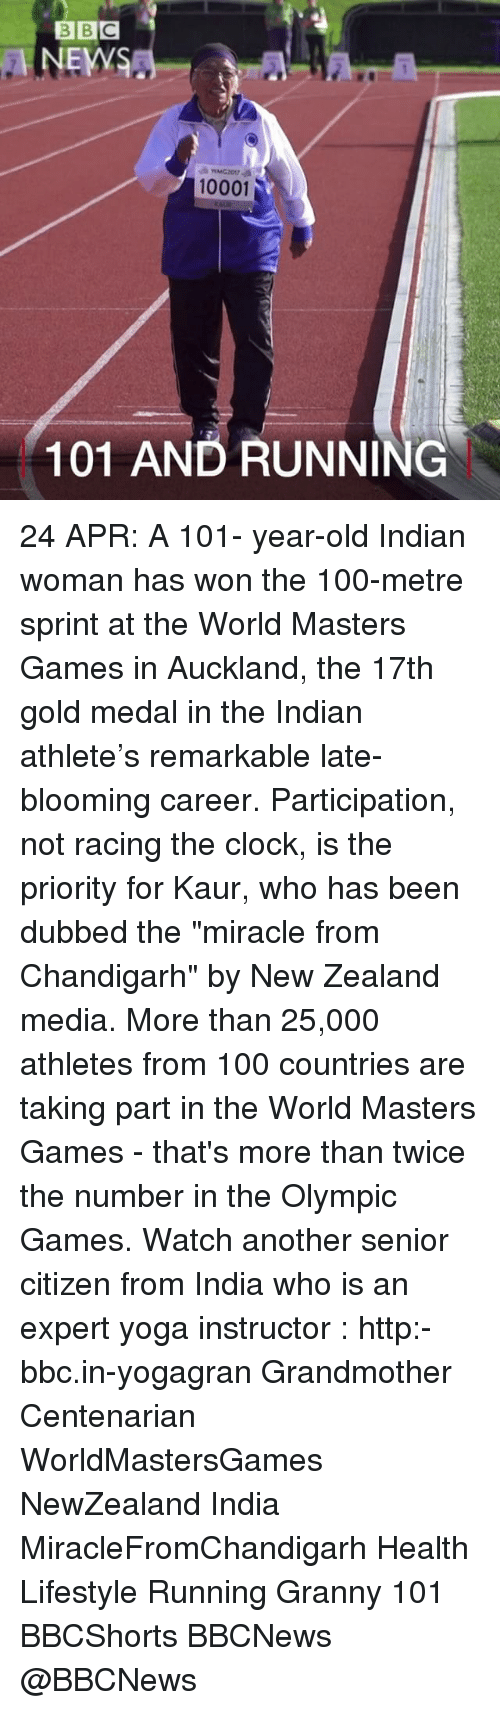 """Anaconda, Clock, and Memes: BBC  NEWS  10001  101 AND RUNNING 24 APR: A 101- year-old Indian woman has won the 100-metre sprint at the World Masters Games in Auckland, the 17th gold medal in the Indian athlete's remarkable late-blooming career. Participation, not racing the clock, is the priority for Kaur, who has been dubbed the """"miracle from Chandigarh"""" by New Zealand media. More than 25,000 athletes from 100 countries are taking part in the World Masters Games - that's more than twice the number in the Olympic Games. Watch another senior citizen from India who is an expert yoga instructor : http:-bbc.in-yogagran Grandmother Centenarian WorldMastersGames NewZealand India MiracleFromChandigarh Health Lifestyle Running Granny 101 BBCShorts BBCNews @BBCNews"""